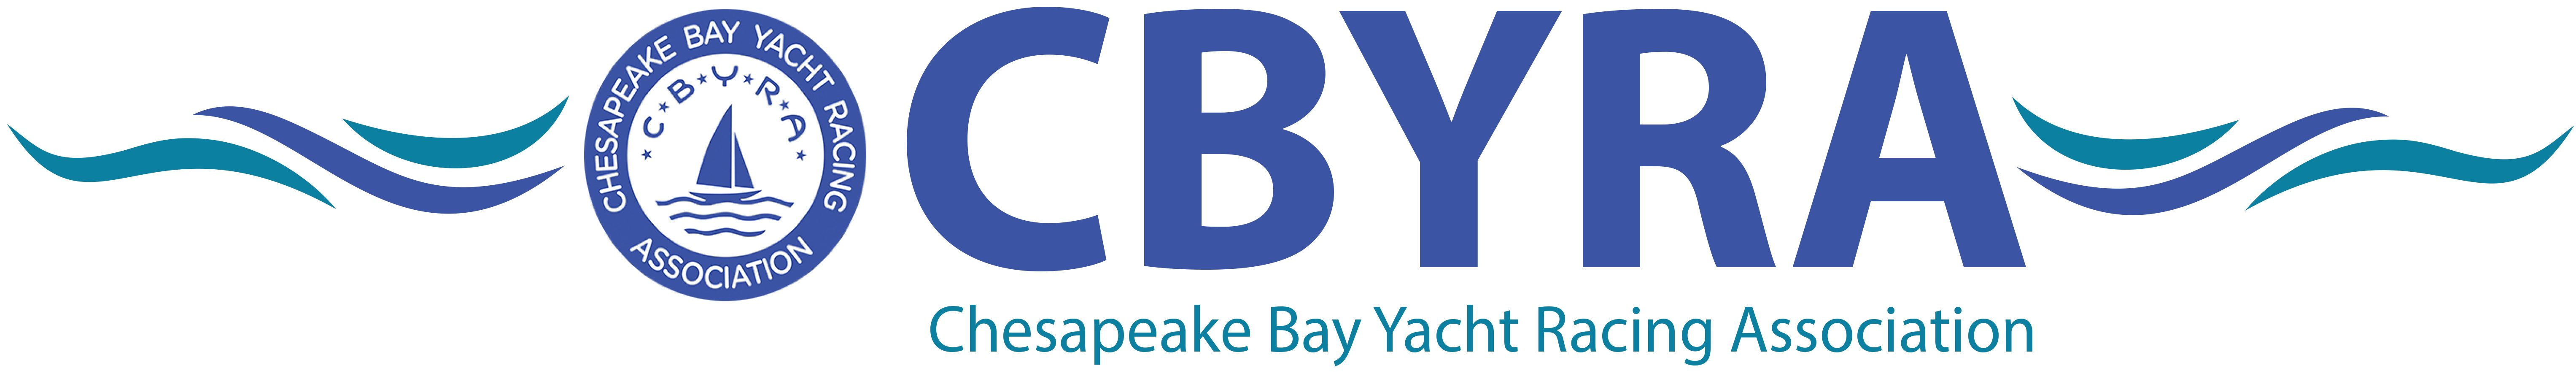 Chesapeake Bay Yacht Racing Association